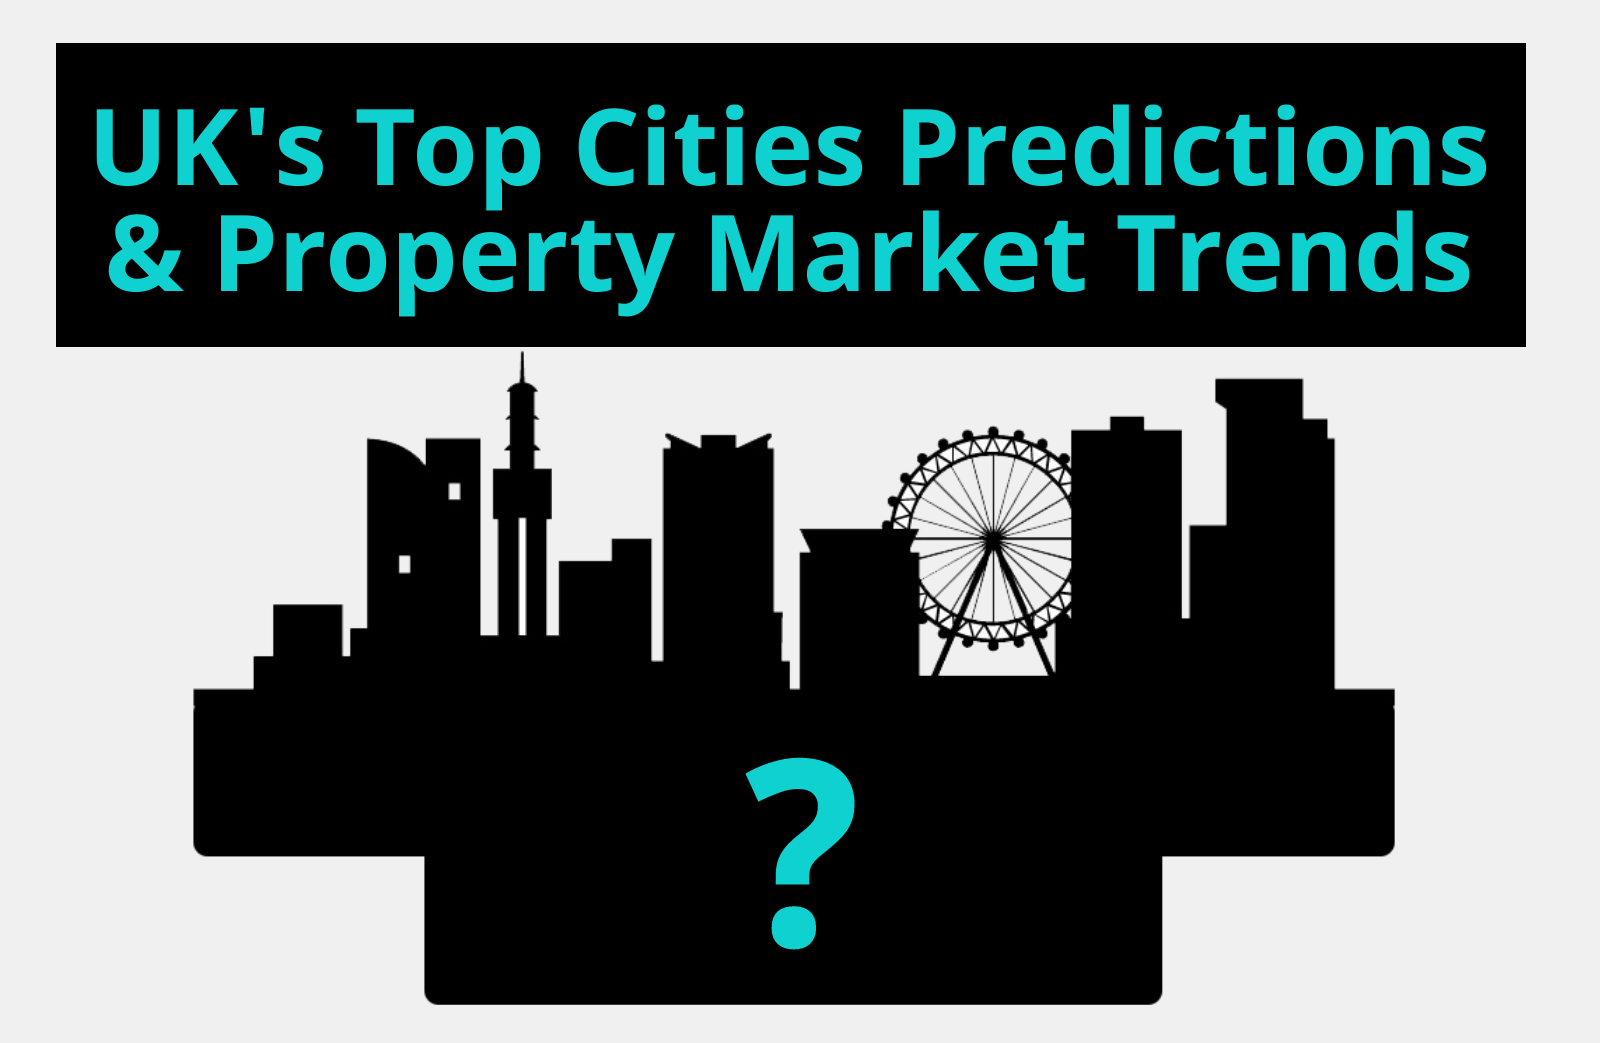 UK's Top Cities Predictions and Property Market Trends